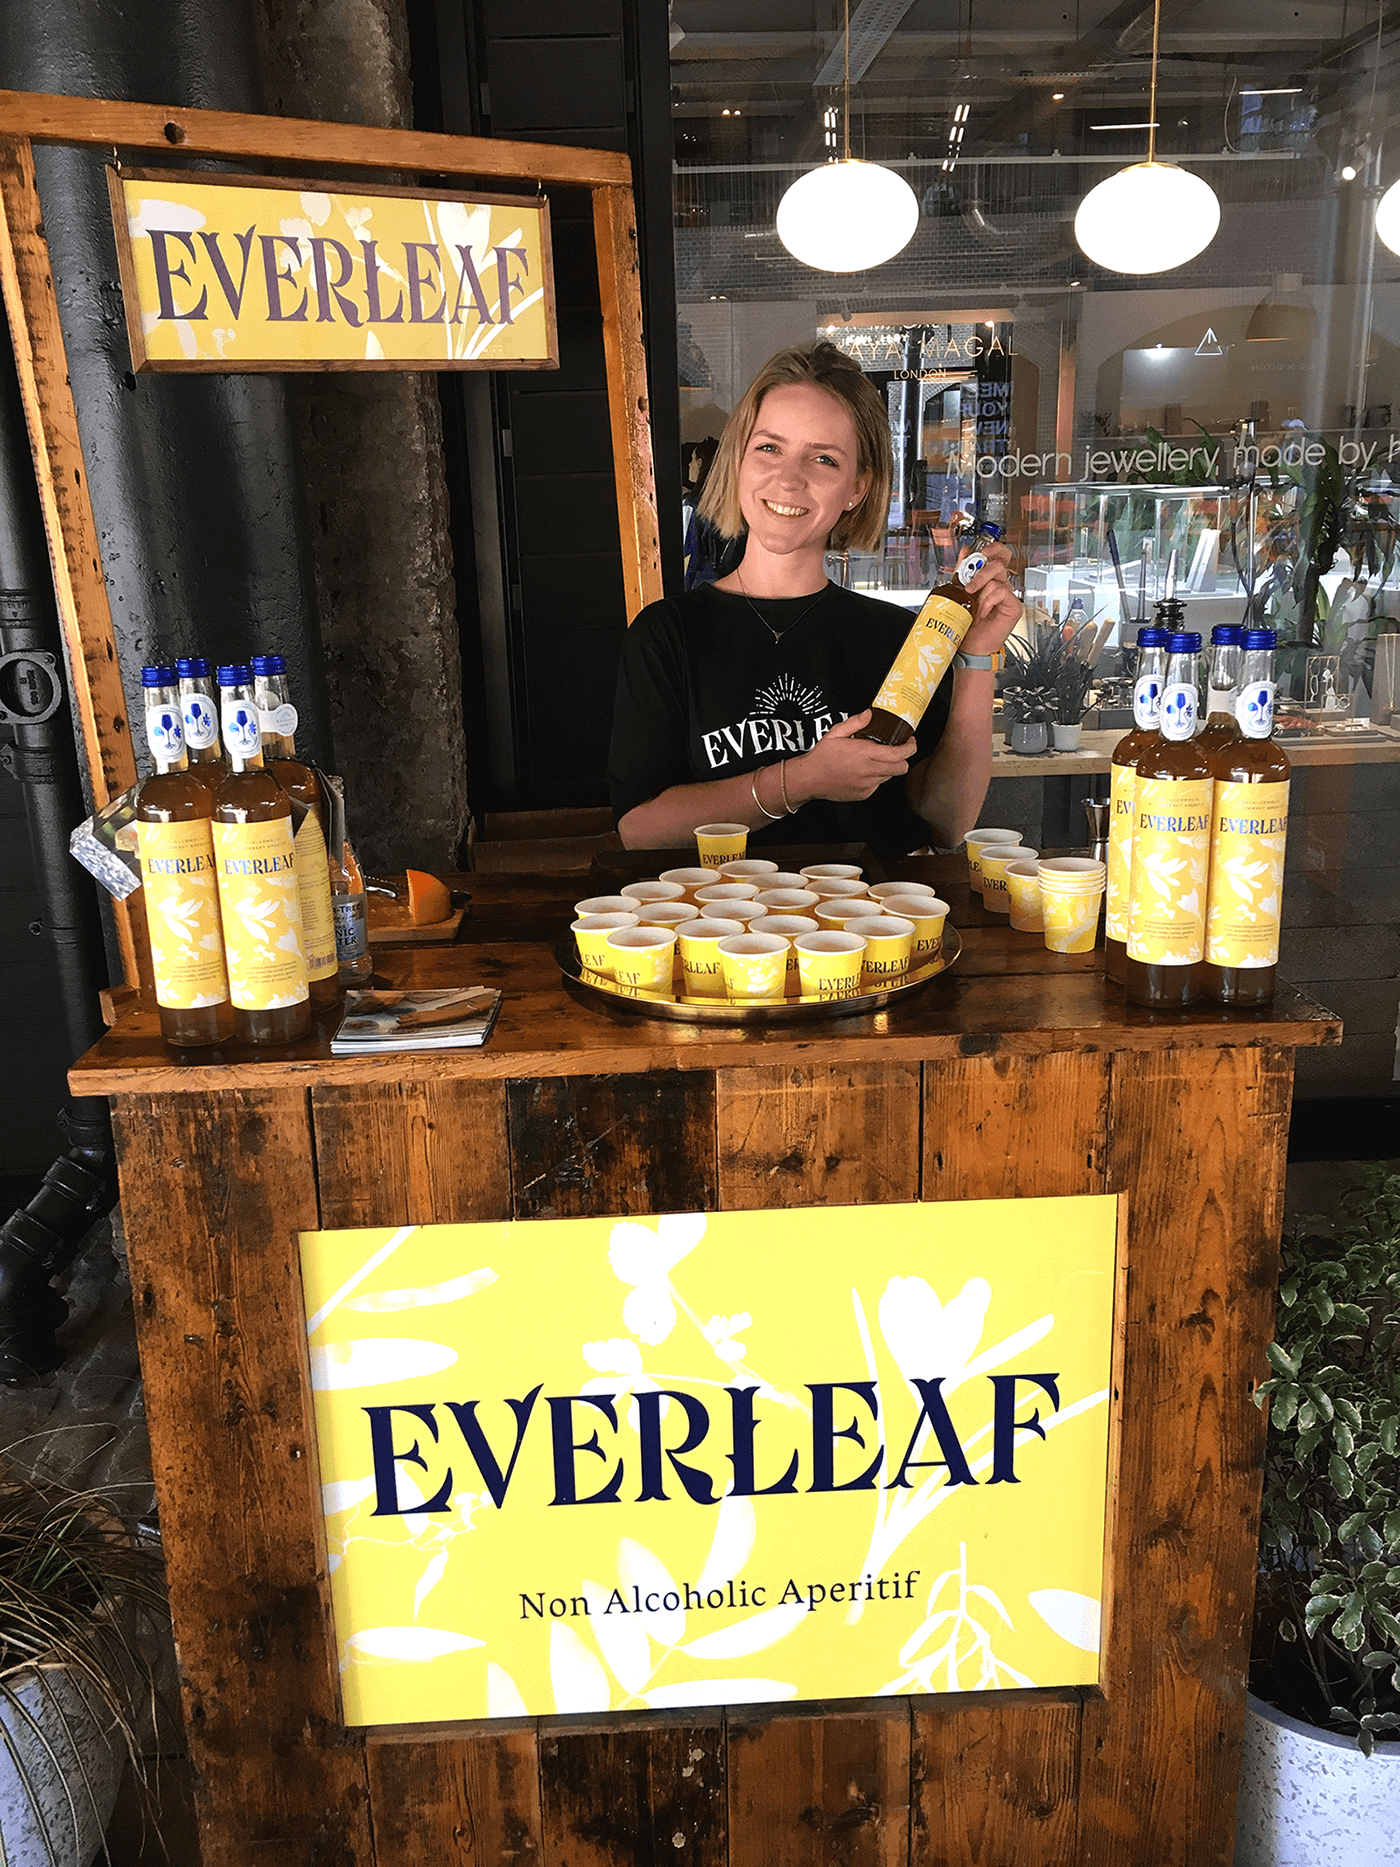 Female brand ambassador with a blonde bob is standing behind a table at an event pouring drinks of Everleaf alcohol-free spirit.